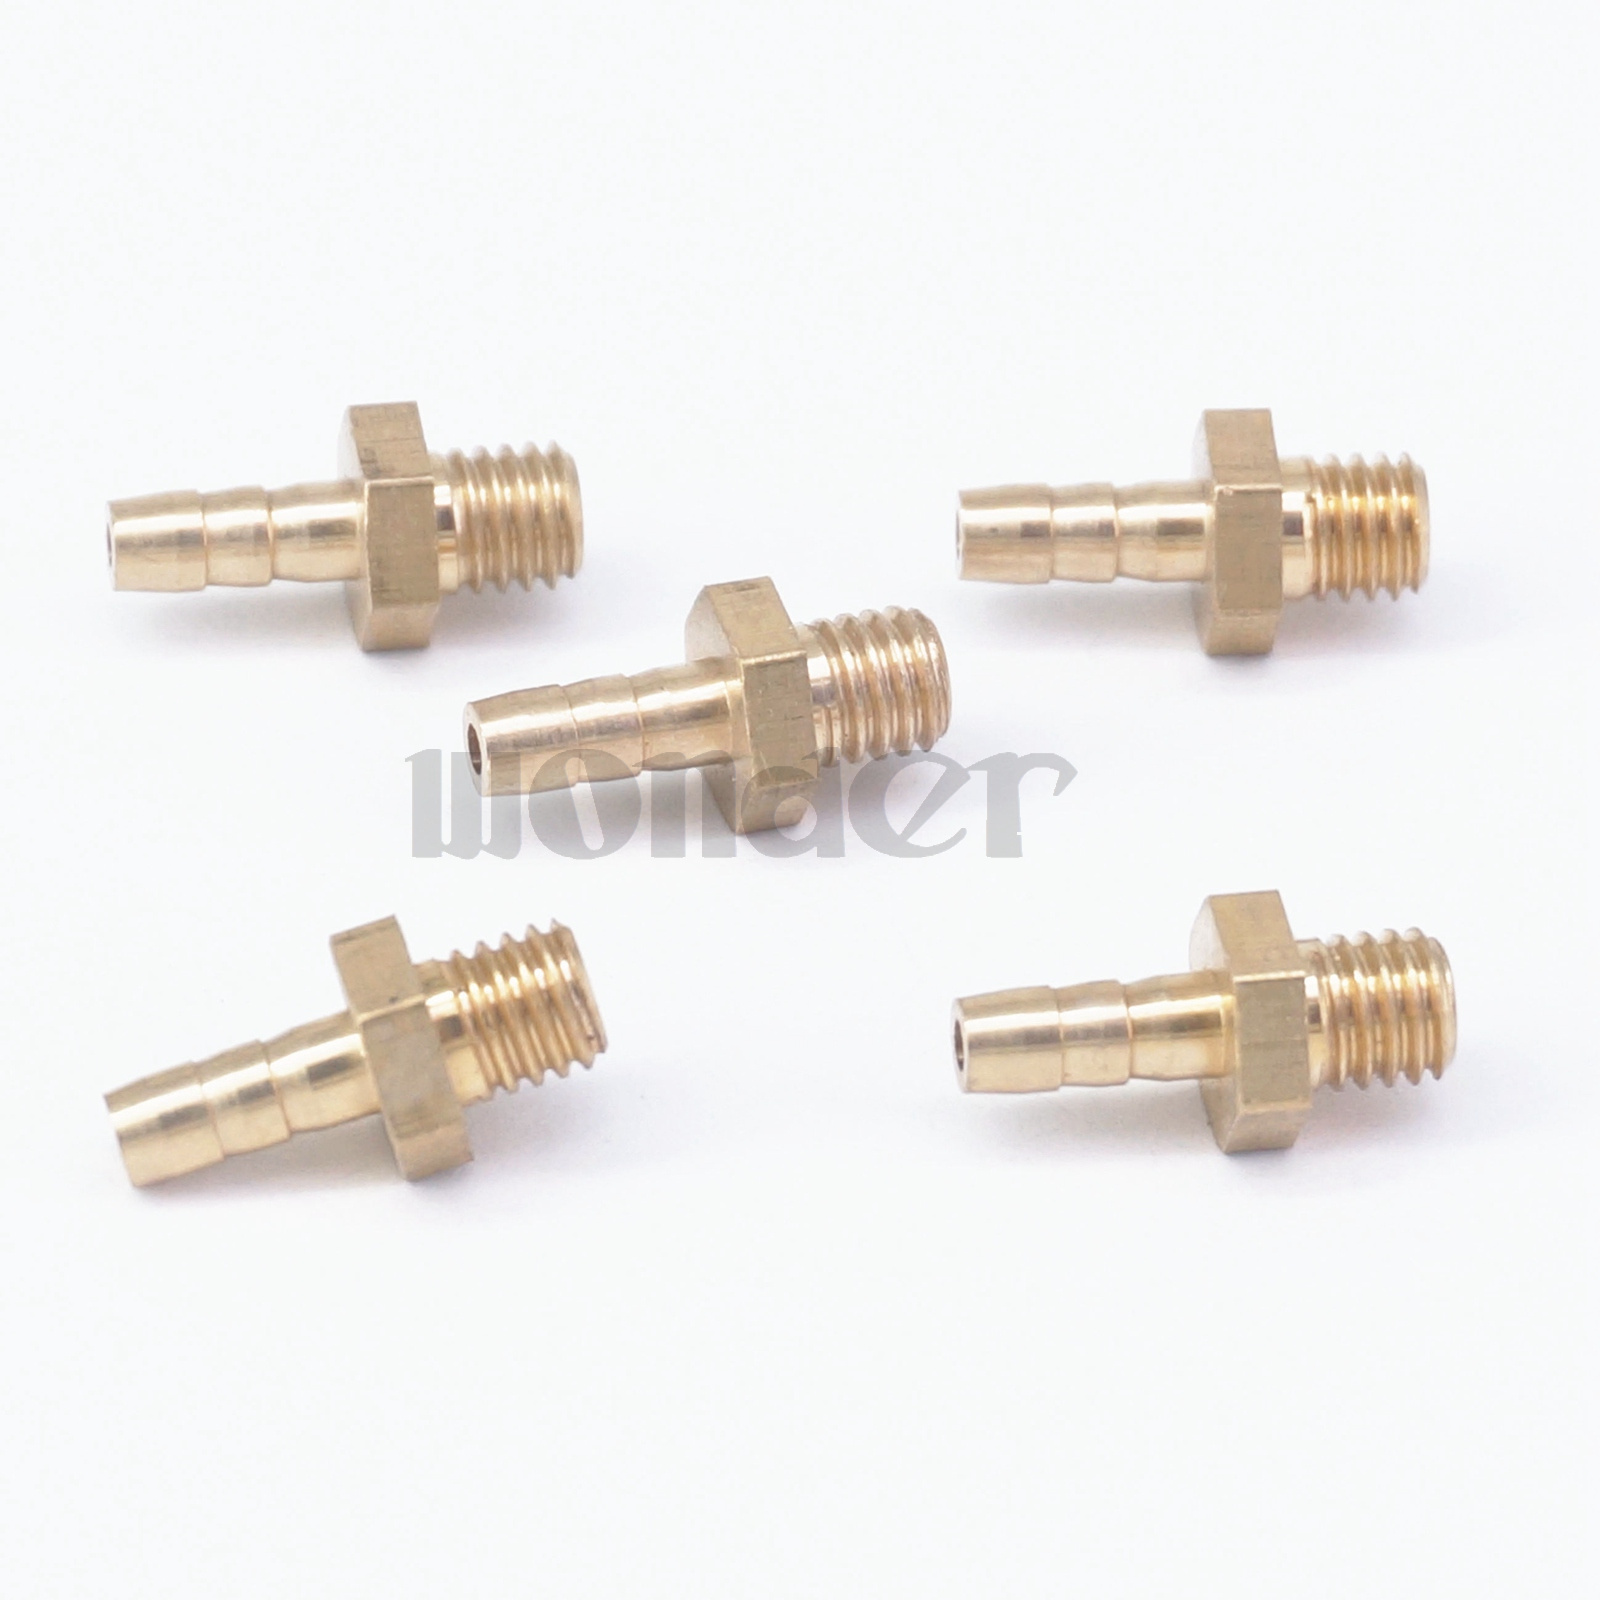 KTS LOT 5 Hose Barb I//D 5mm x M5 Metric Male Thread Brass Coupler Splicer Connector Fitting for Fuel Gas Water